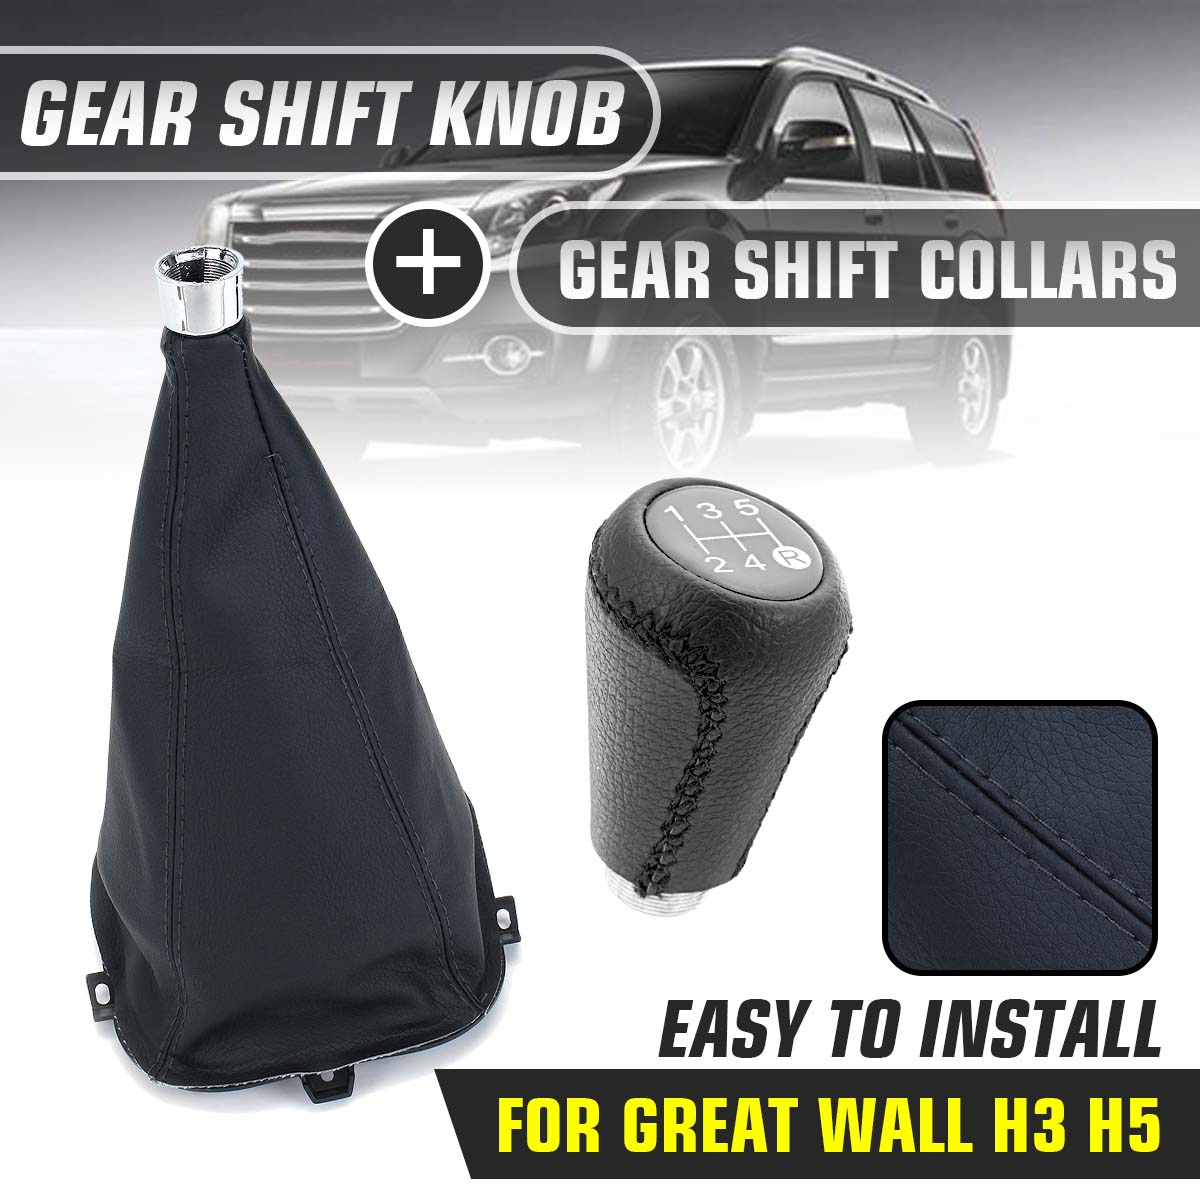 Gear Shift Collars Gear Shift Lever Dust Cover Anti-dust 5 Speed Gear Shift Knob For Great Wall Hover H3 H5 2010 2011 2012 2013